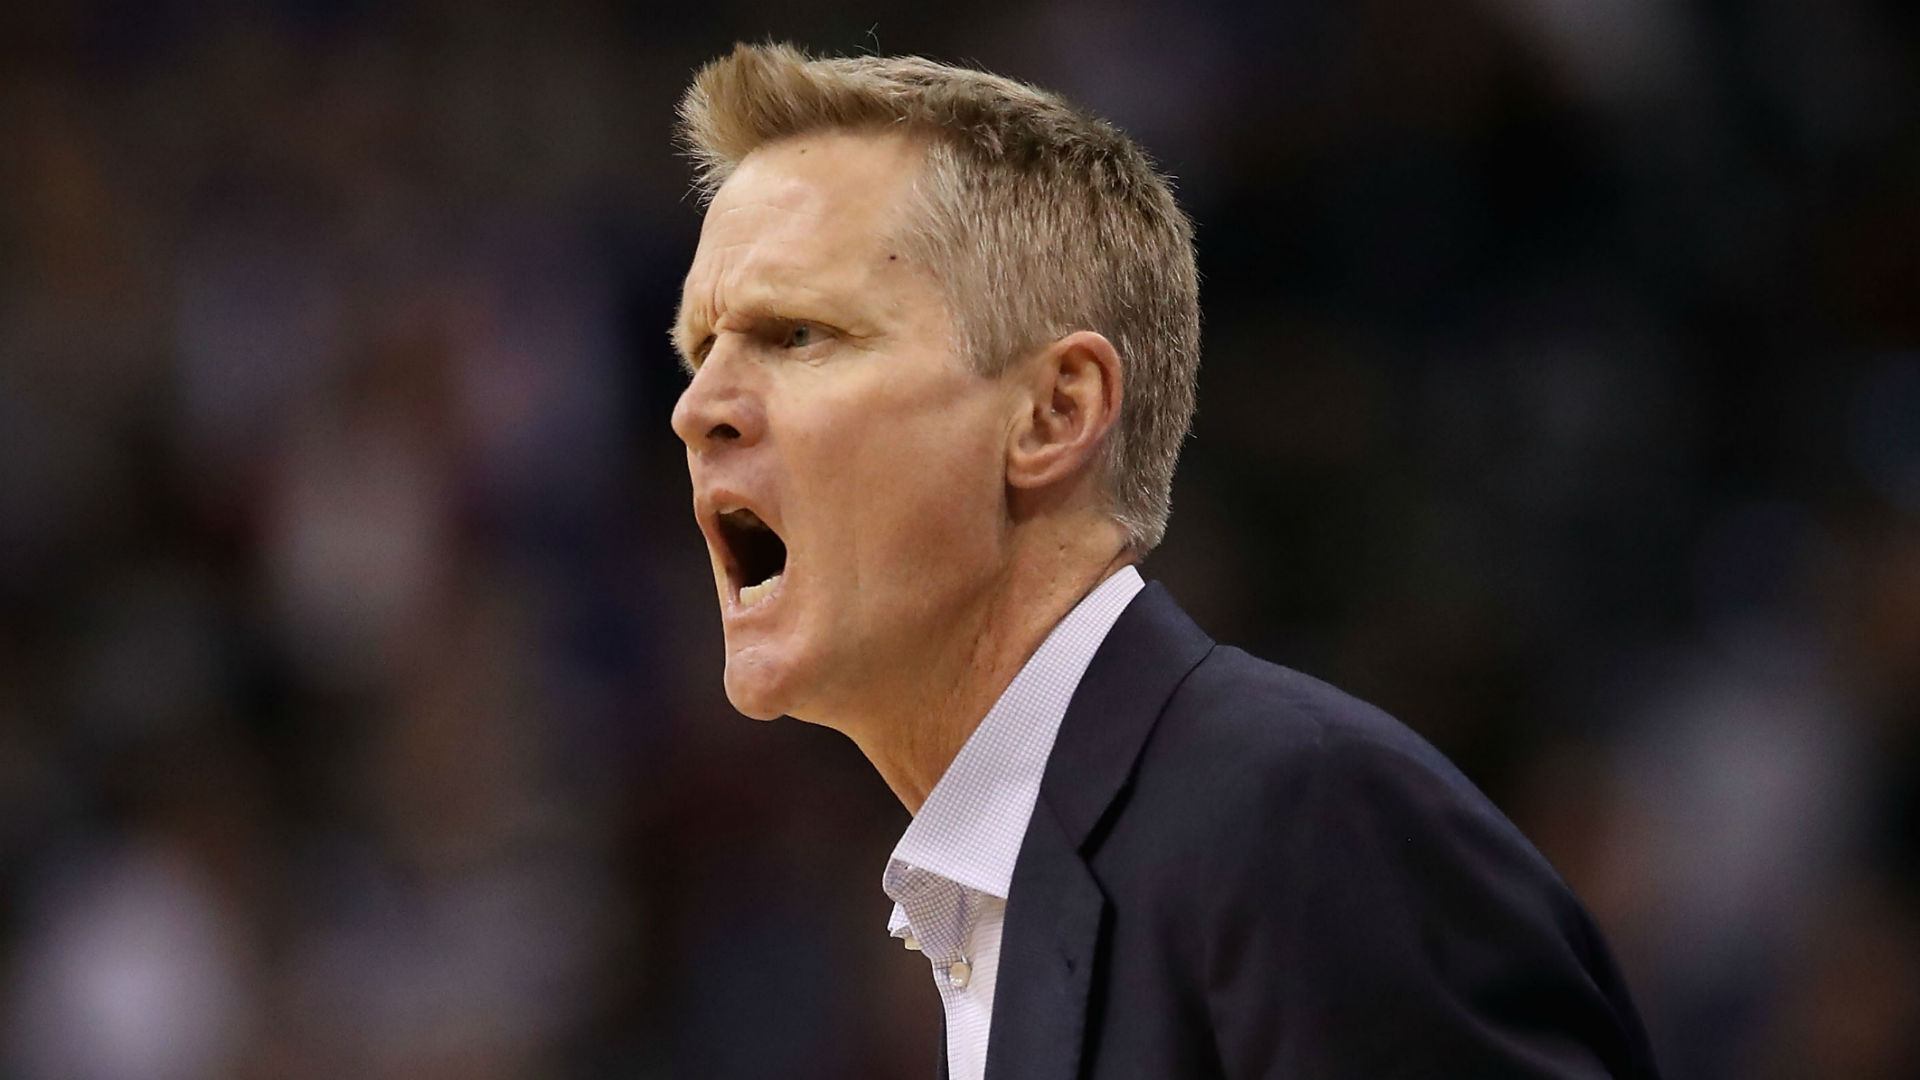 Stephen Curry shares ejected coach Steve Kerr's frustration: 'The fire came out'